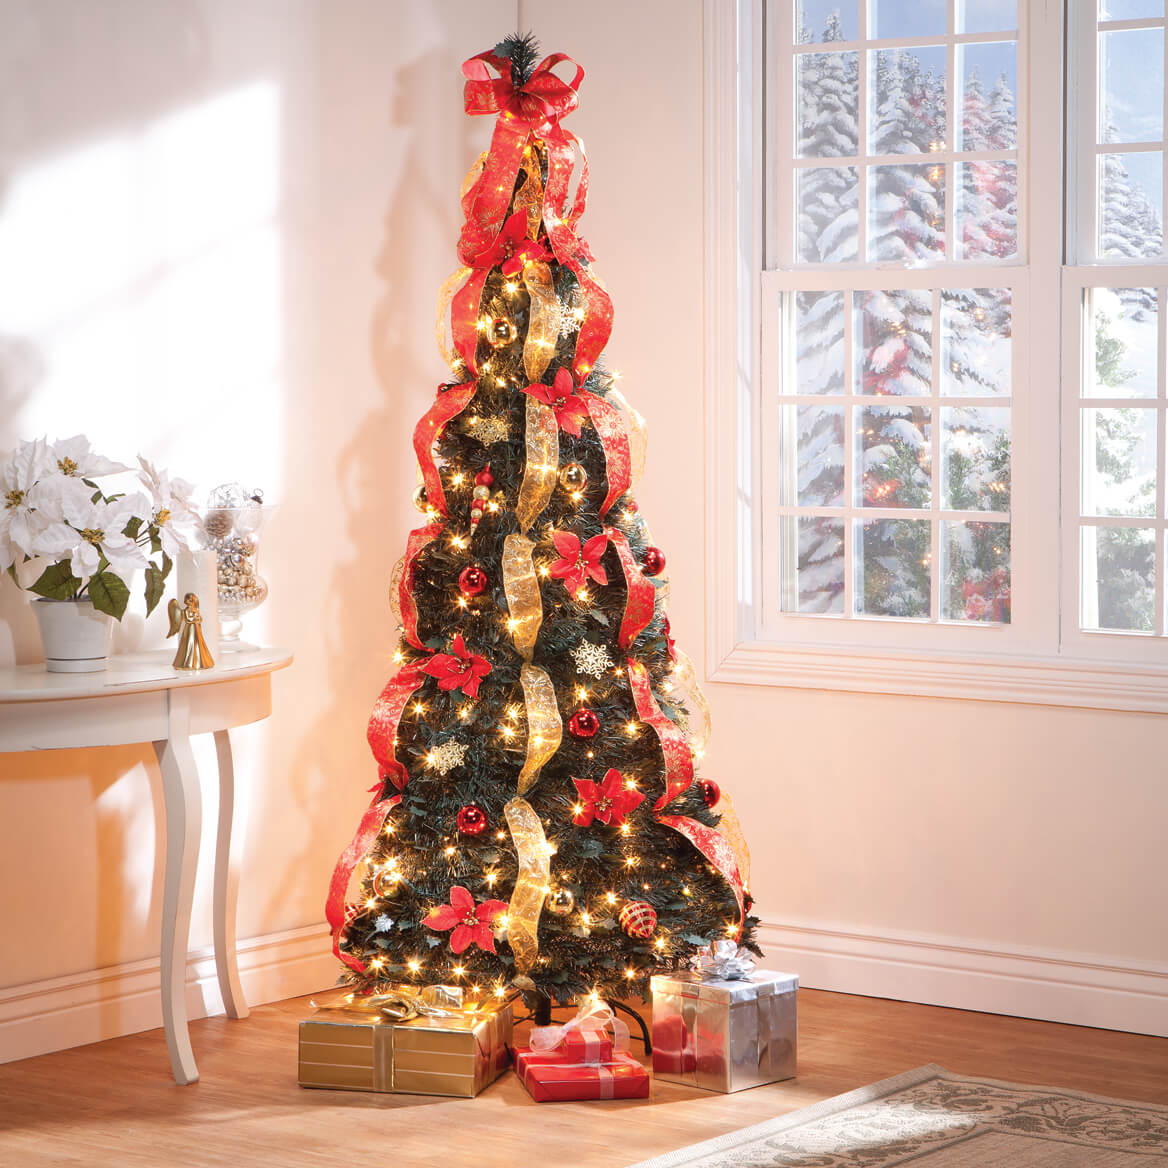 7' Red Poinsettia Pull-Up Tree by Holiday Peak™-357693